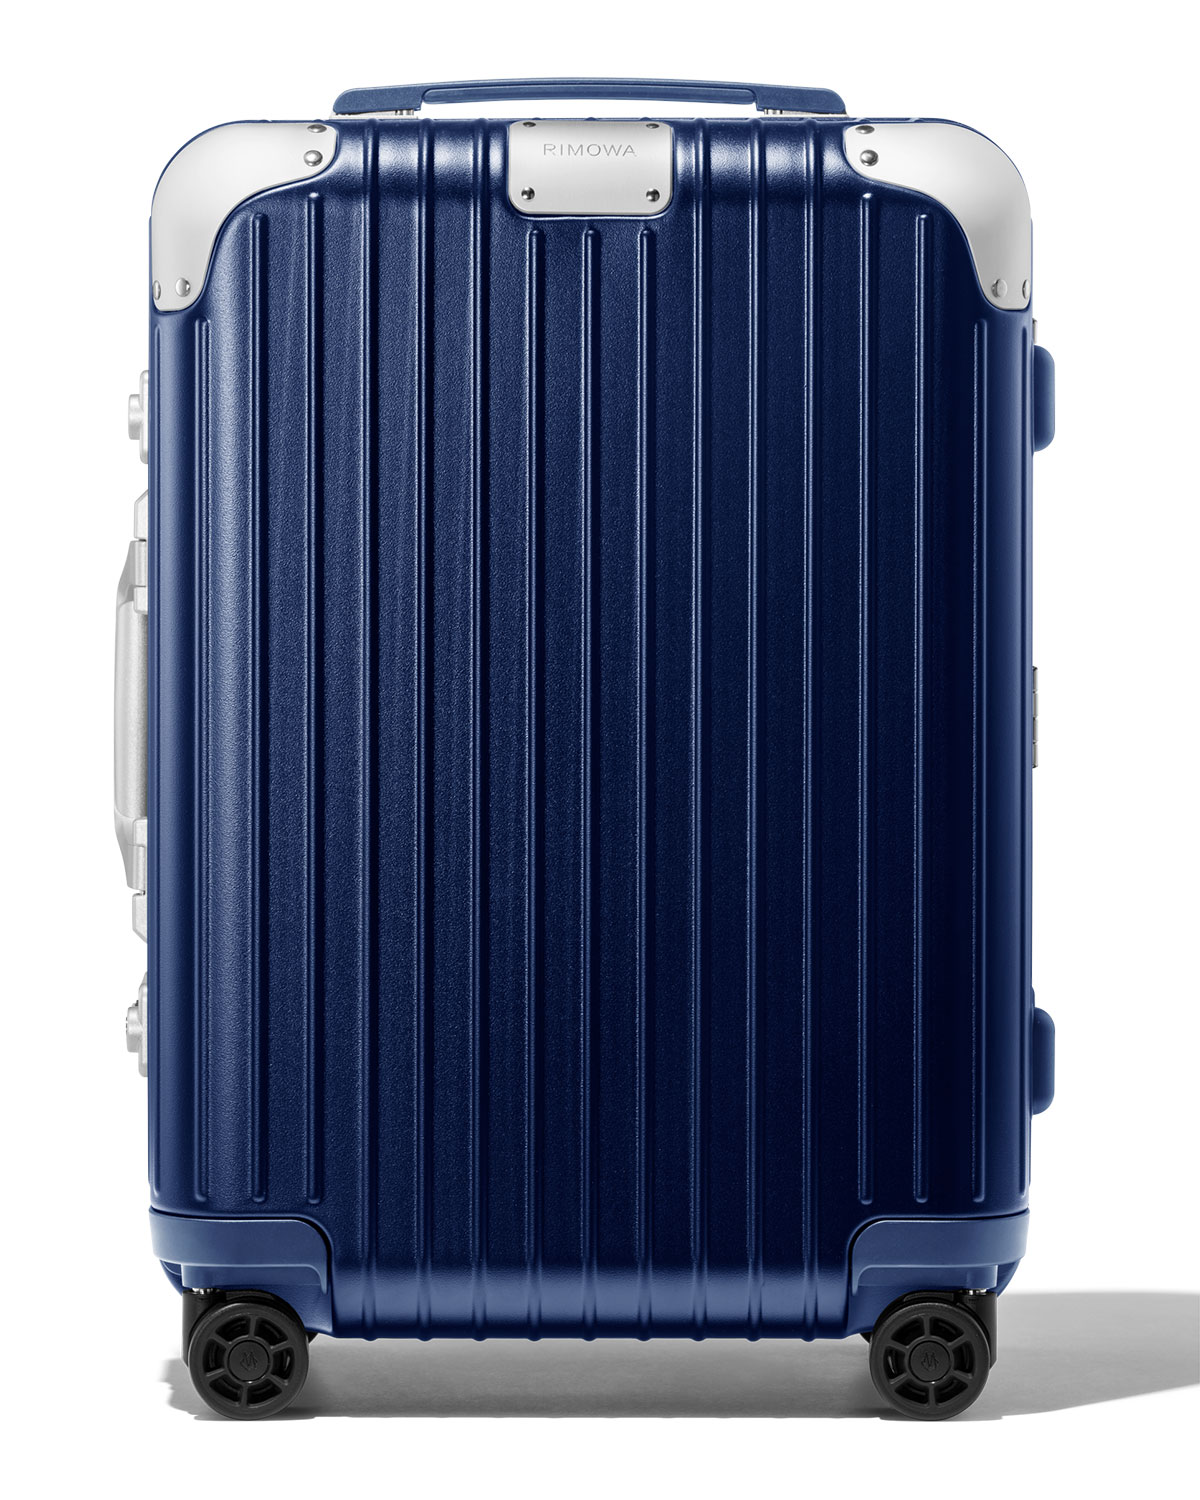 Rimowa Bags HYBRID CABIN SPINNER LUGGAGE